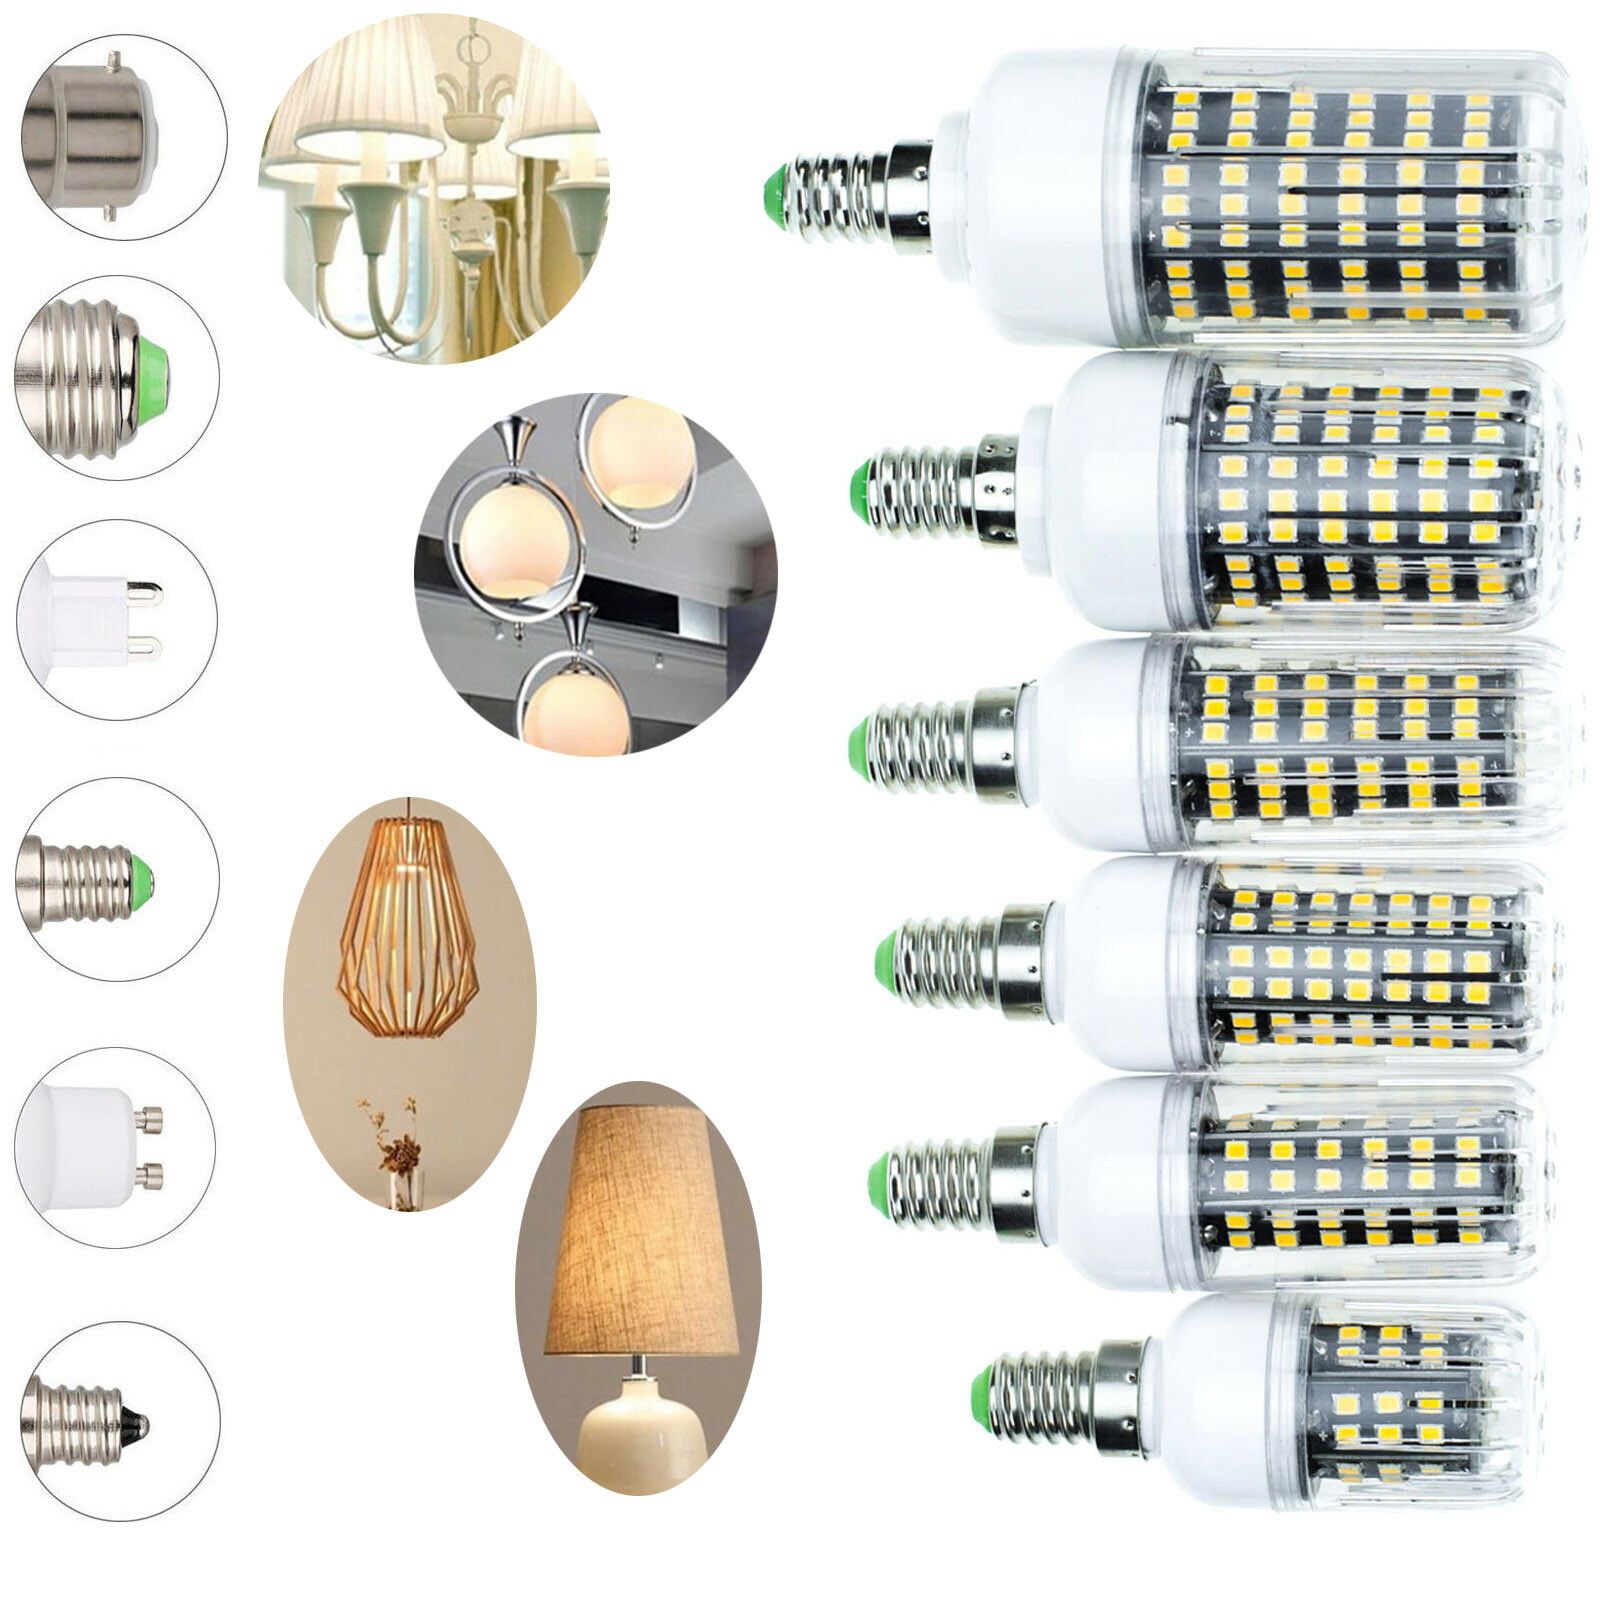 Ultra Bright Mr16 Gu10 E27 E14 Dimmable 6w 9w 12w Led Cob Spot Light Bulbs Cree Led Cob Spotlights Mr16 Gu10 Gu5 3 5w 6w 7w 9w Spot Light